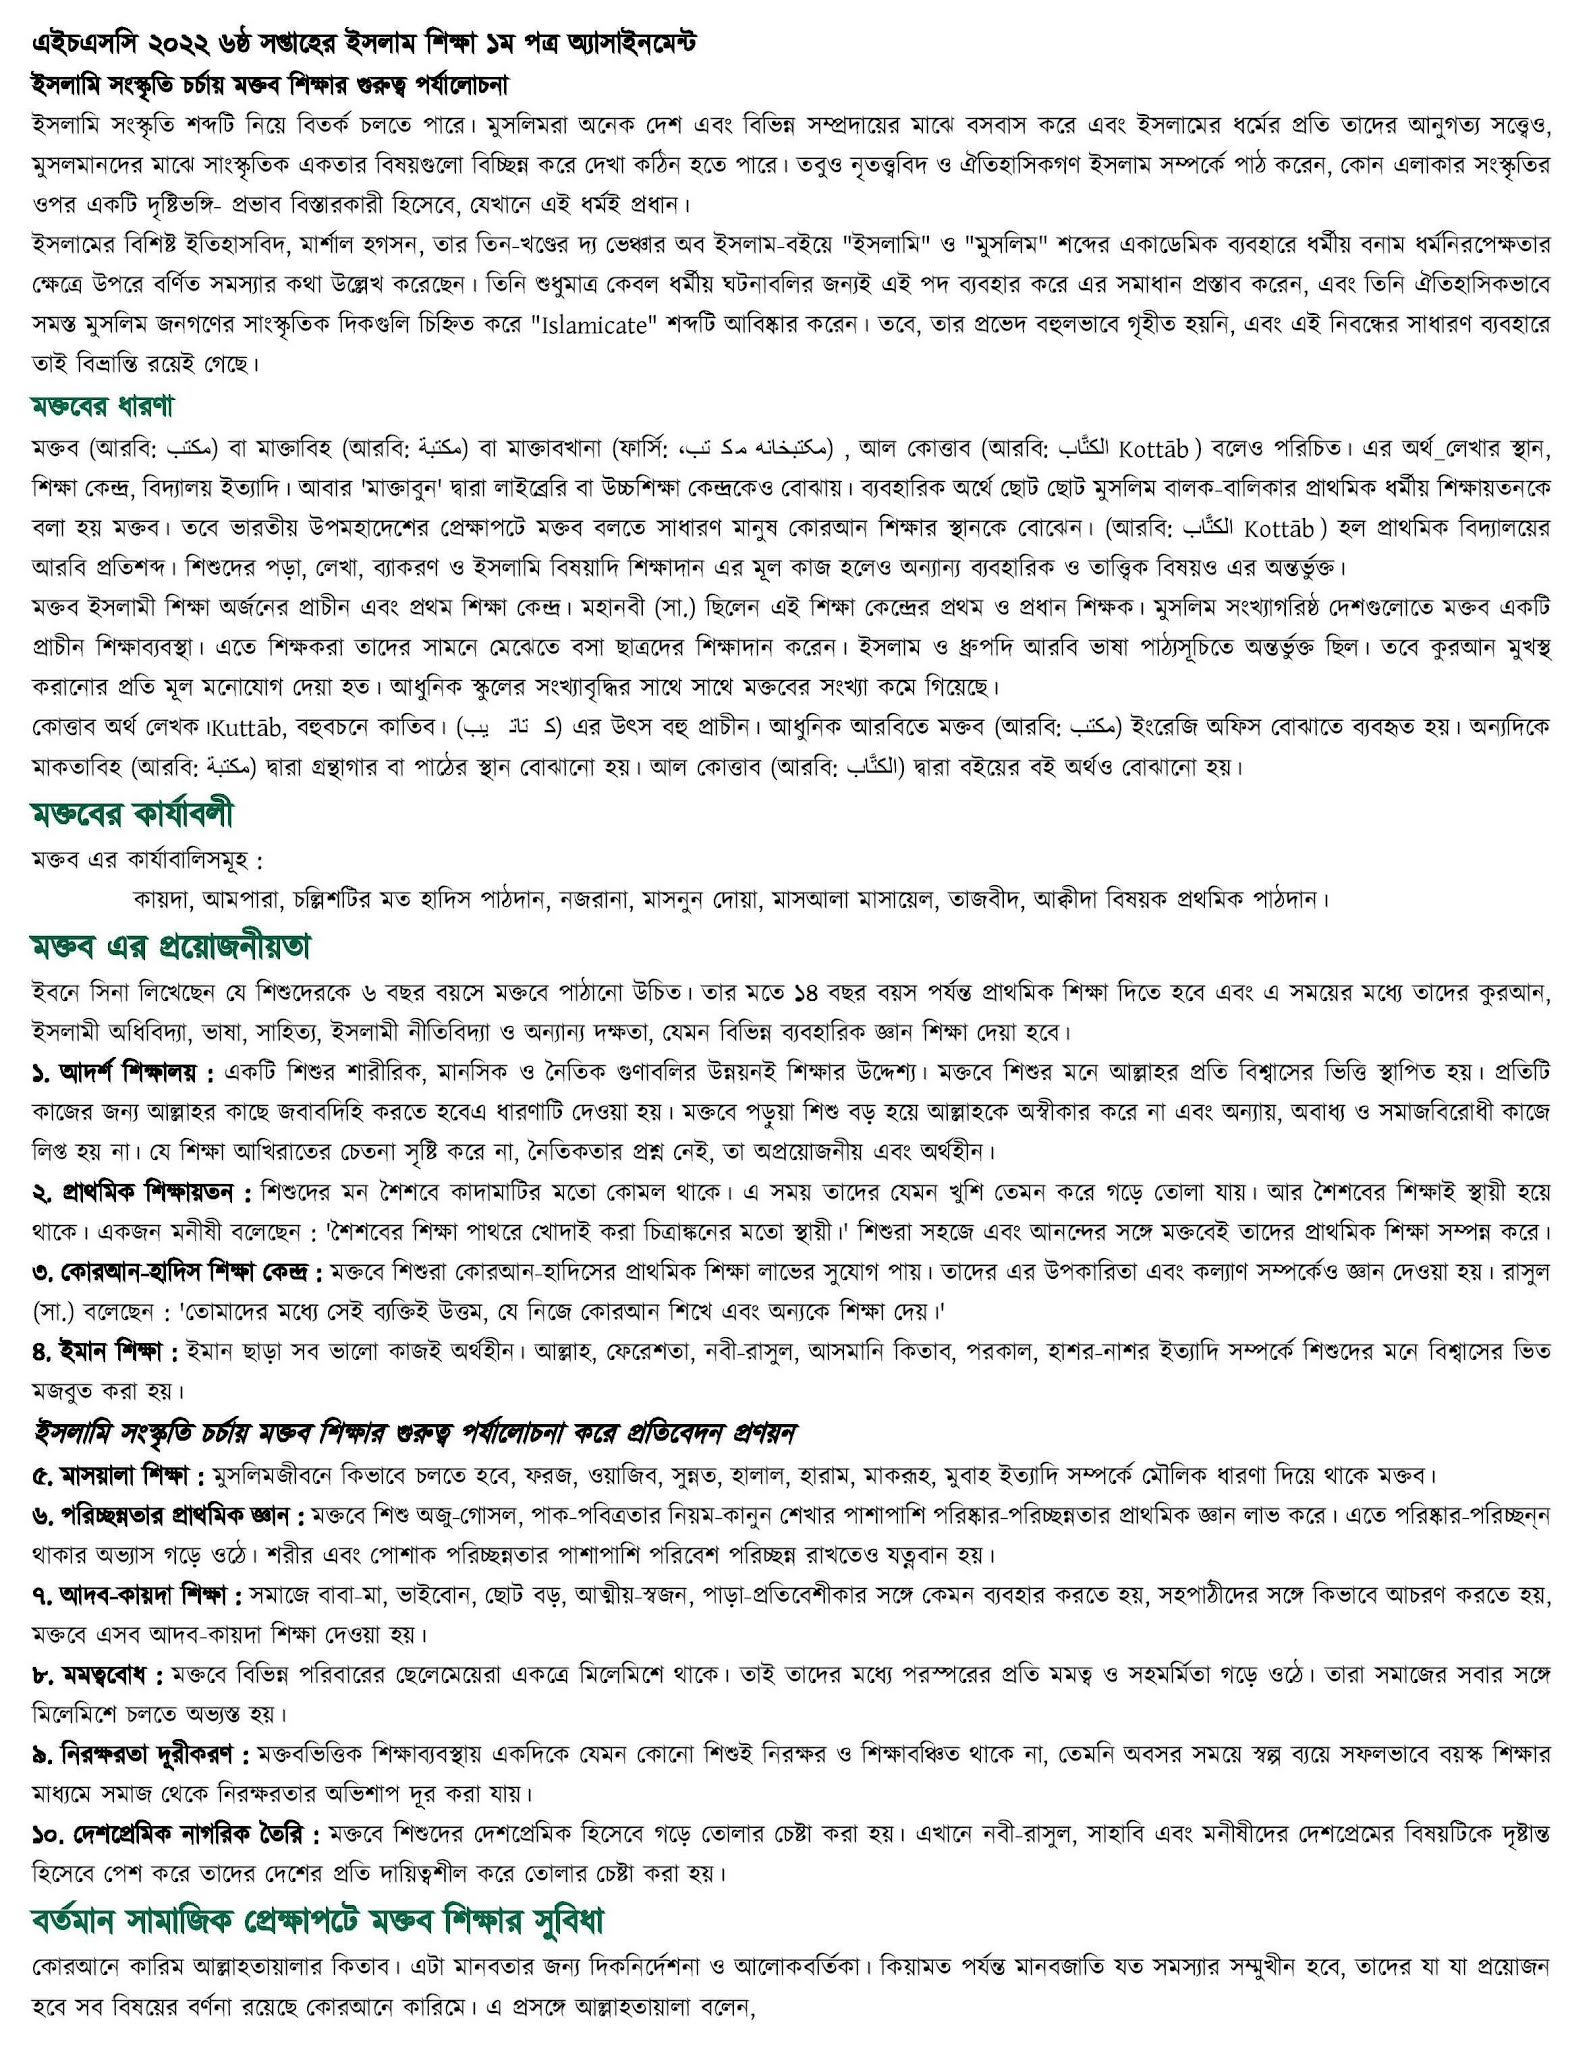 HSC Islam Assignment Answer 2022 6th Week